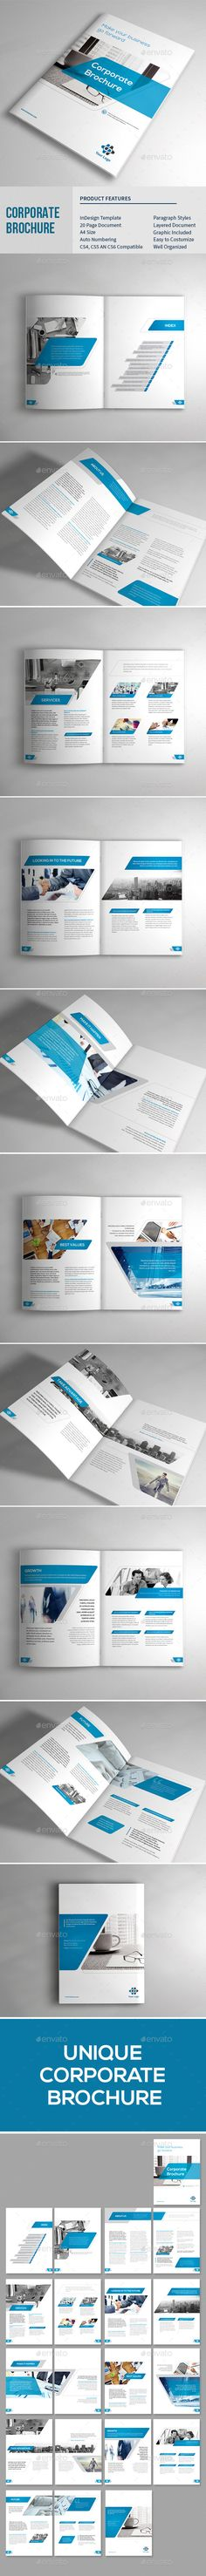 Corporate Brochure Template InDesign INDD #design Download: http://graphicriver.net/item/corporate-brochure/14467434?ref=ksioks